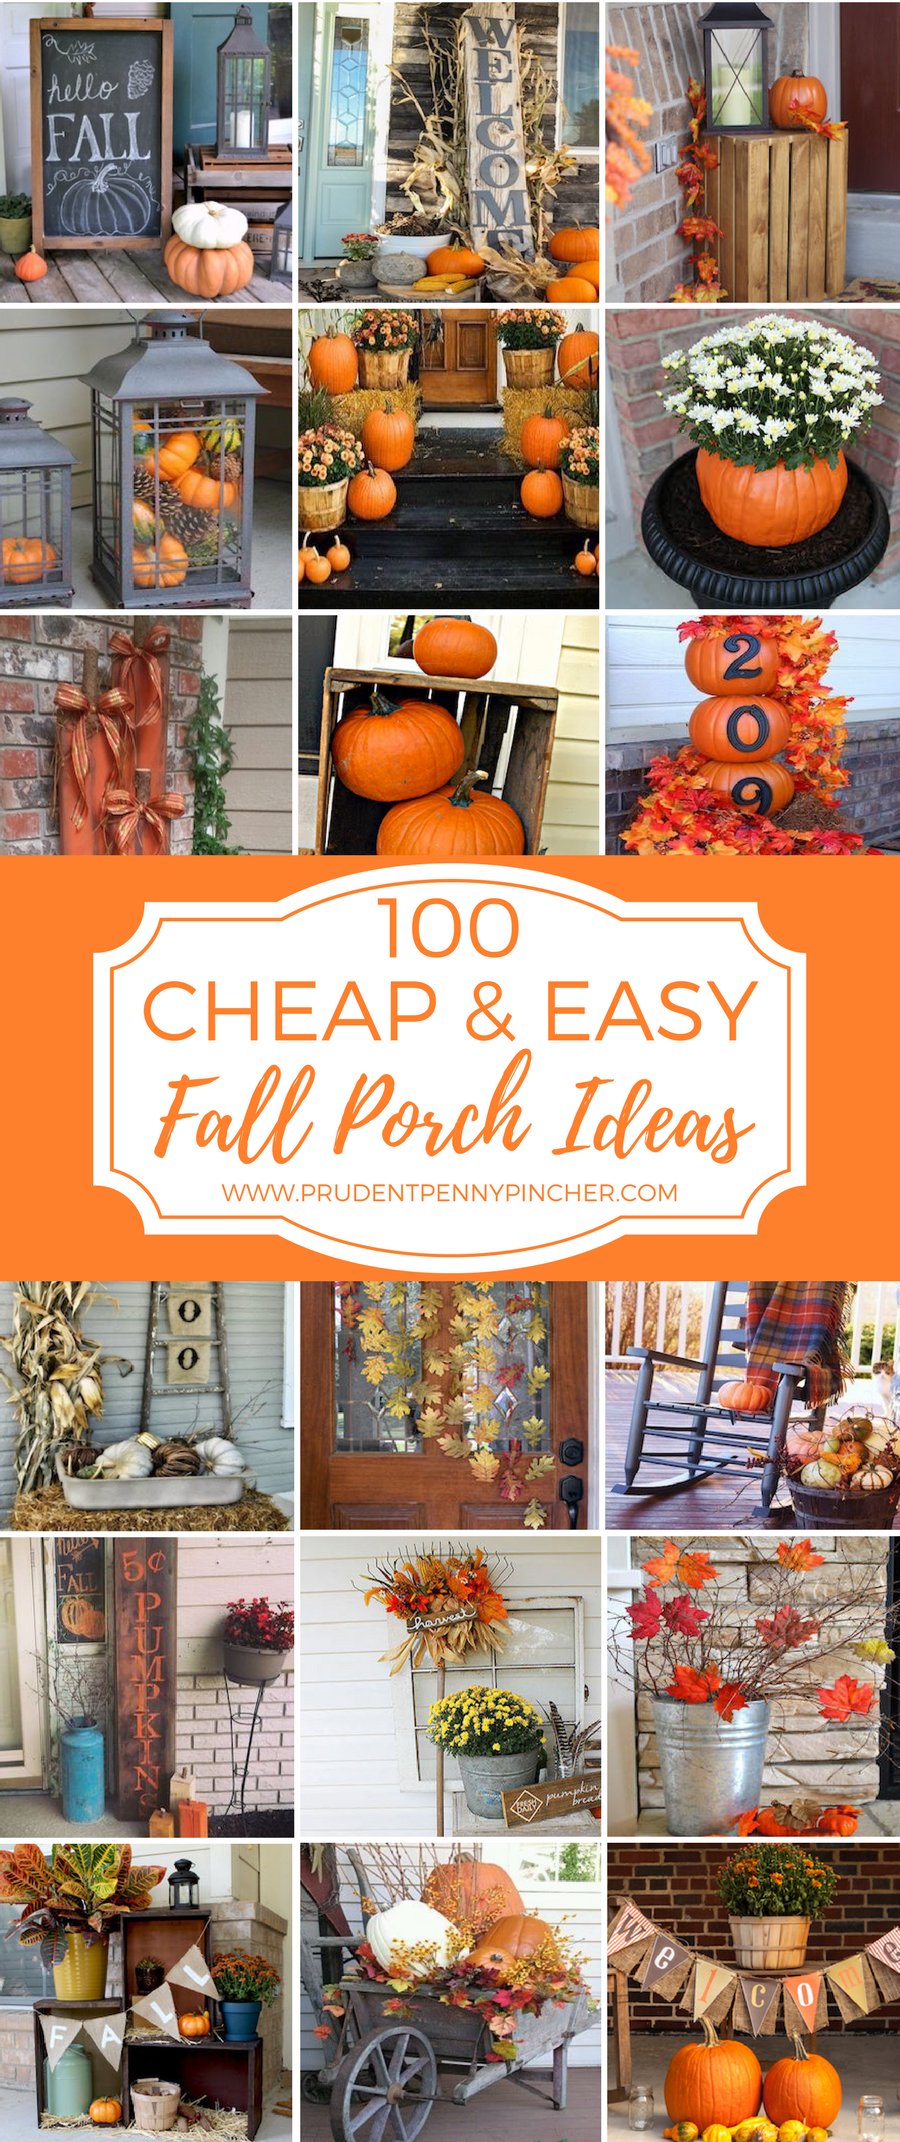 11 Cheap and Easy Fall Porch Decor Ideas  Fall decorations porch